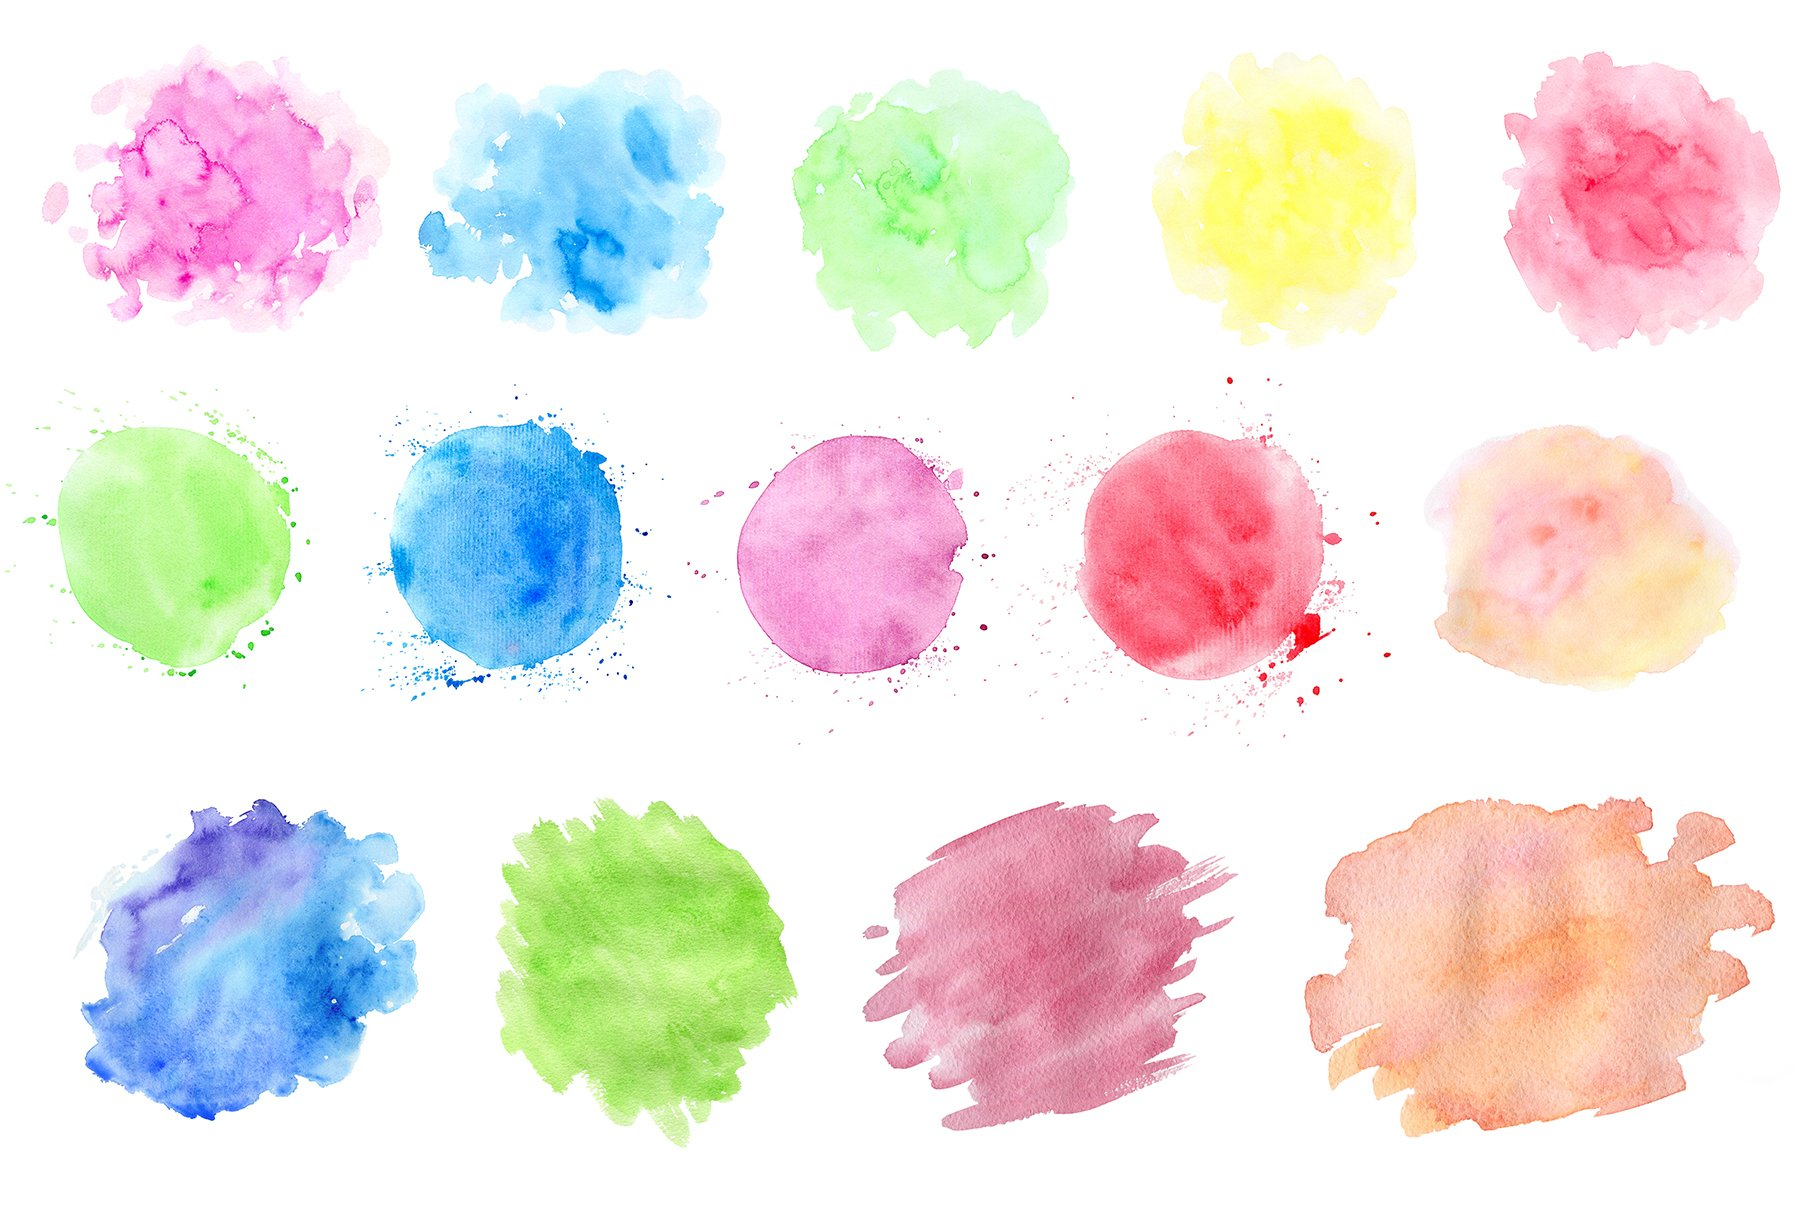 Watercolor Blots and Patterns example image 4